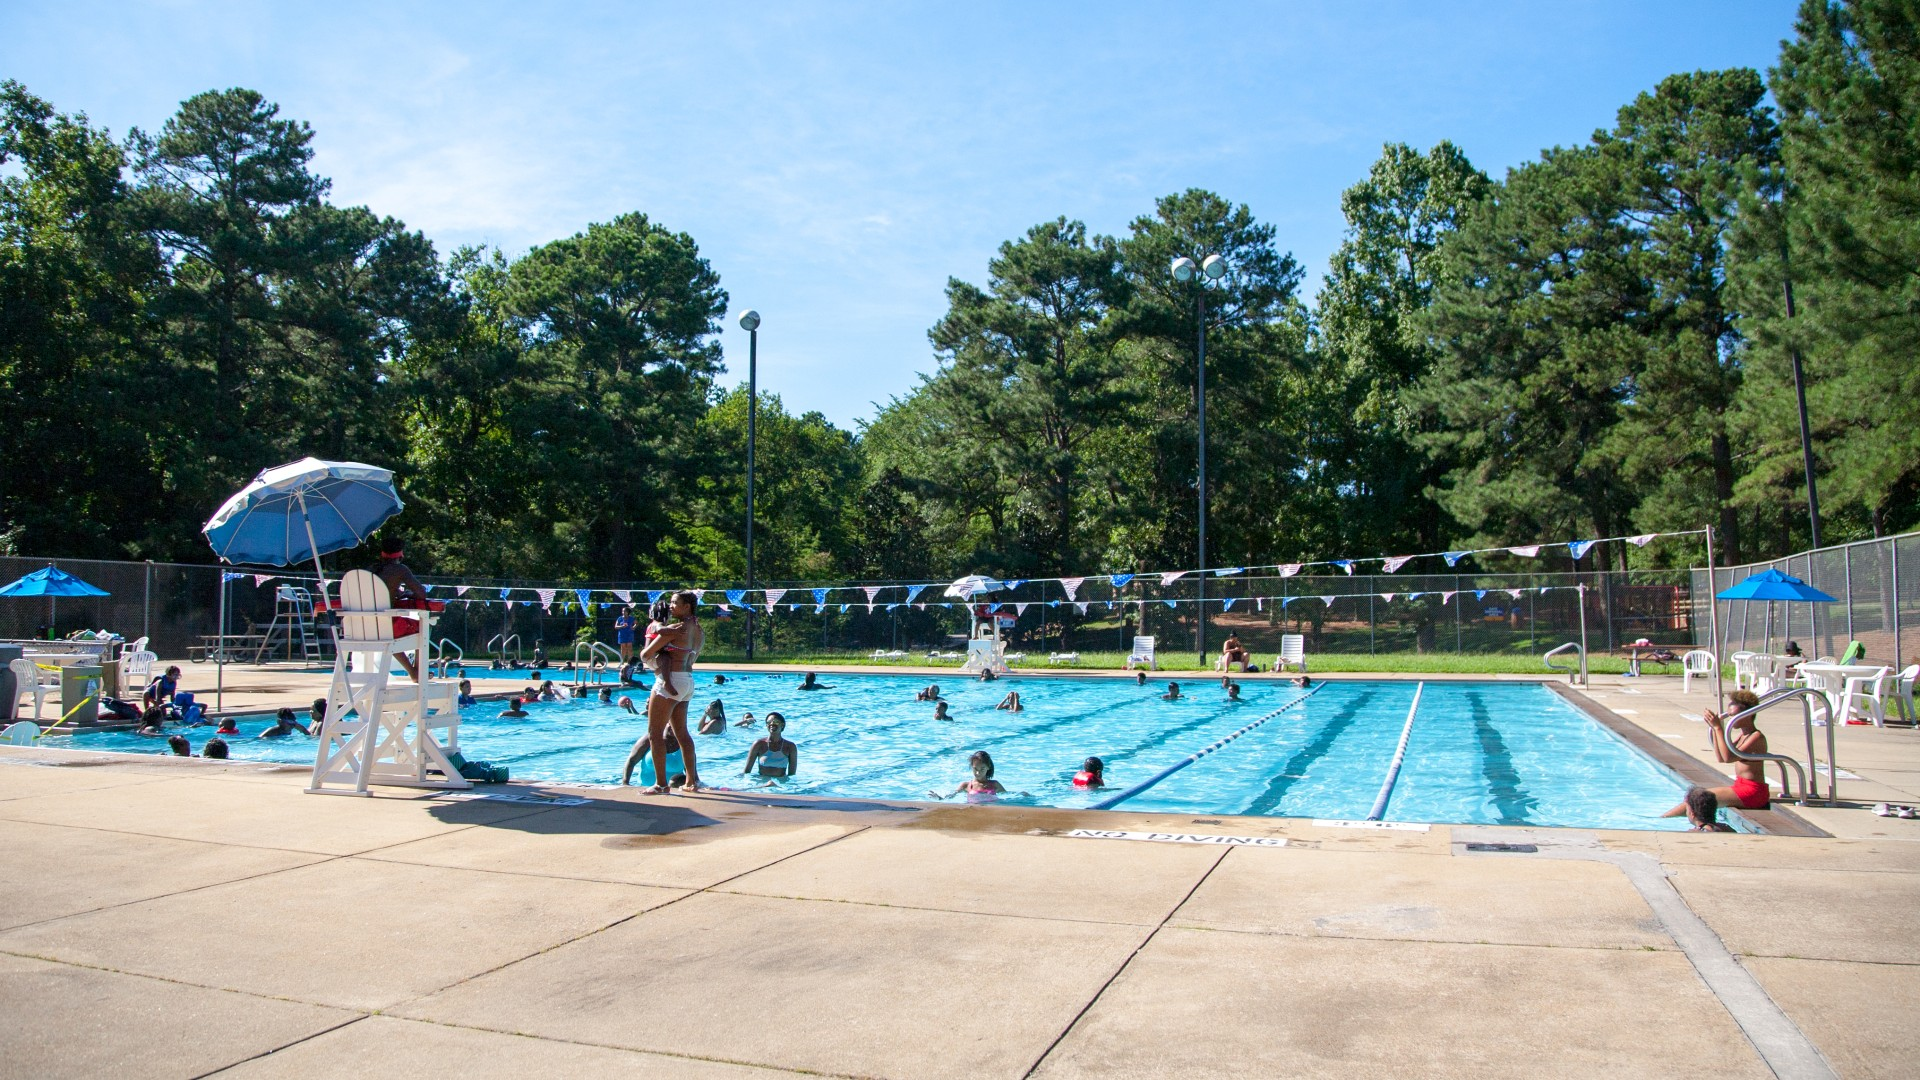 People enjoying the Biltmore Hills pool in the summertime